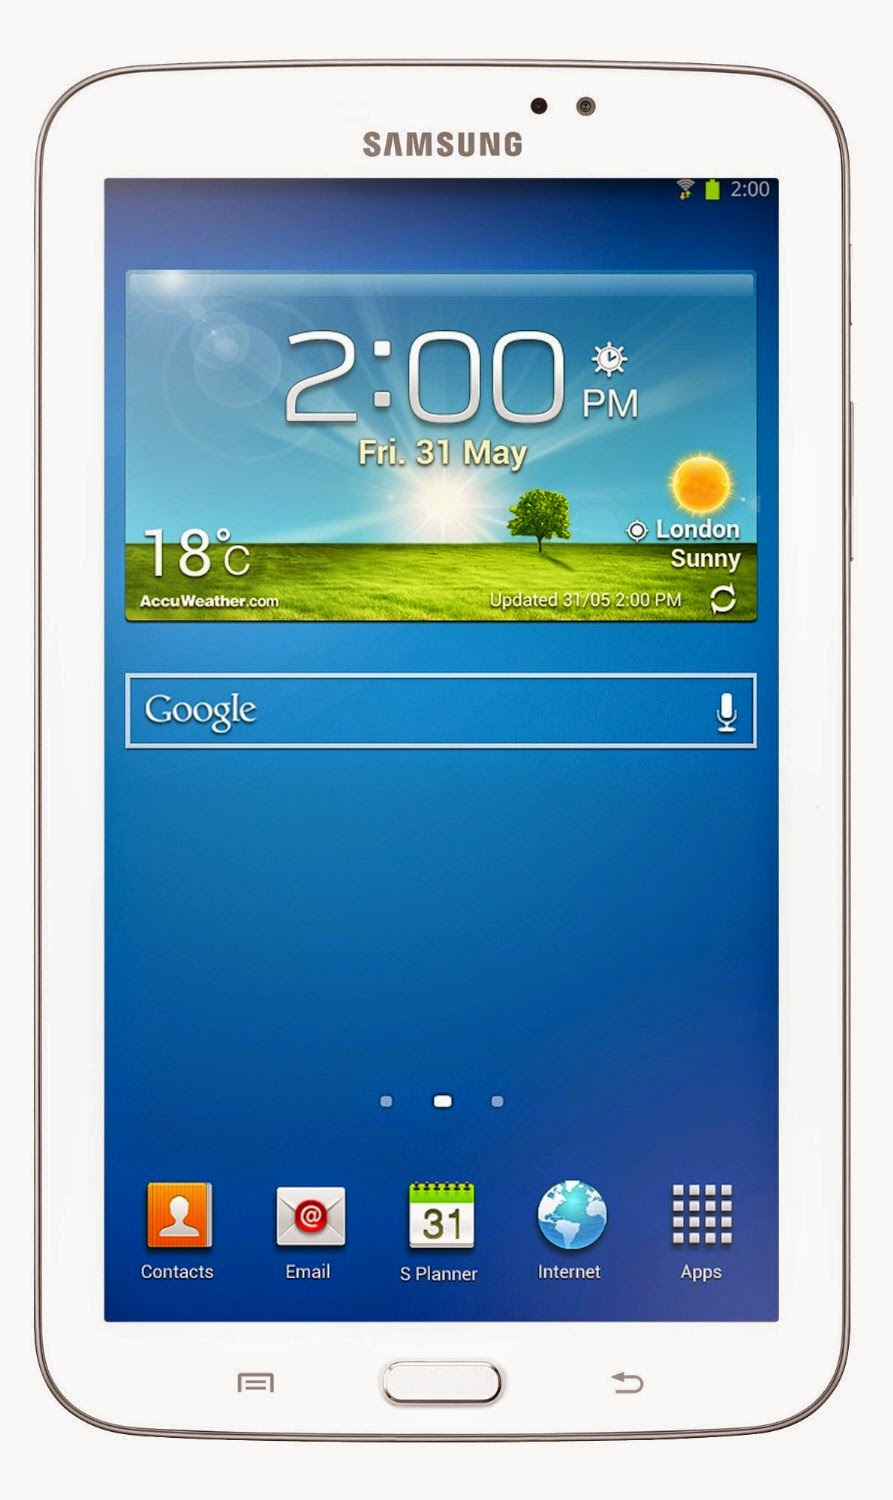 Samsung Galaxy Tab 3 with Bluetooth Headset at Rs.13999 (7-inch, WiFi, 3G, Voice Calling)